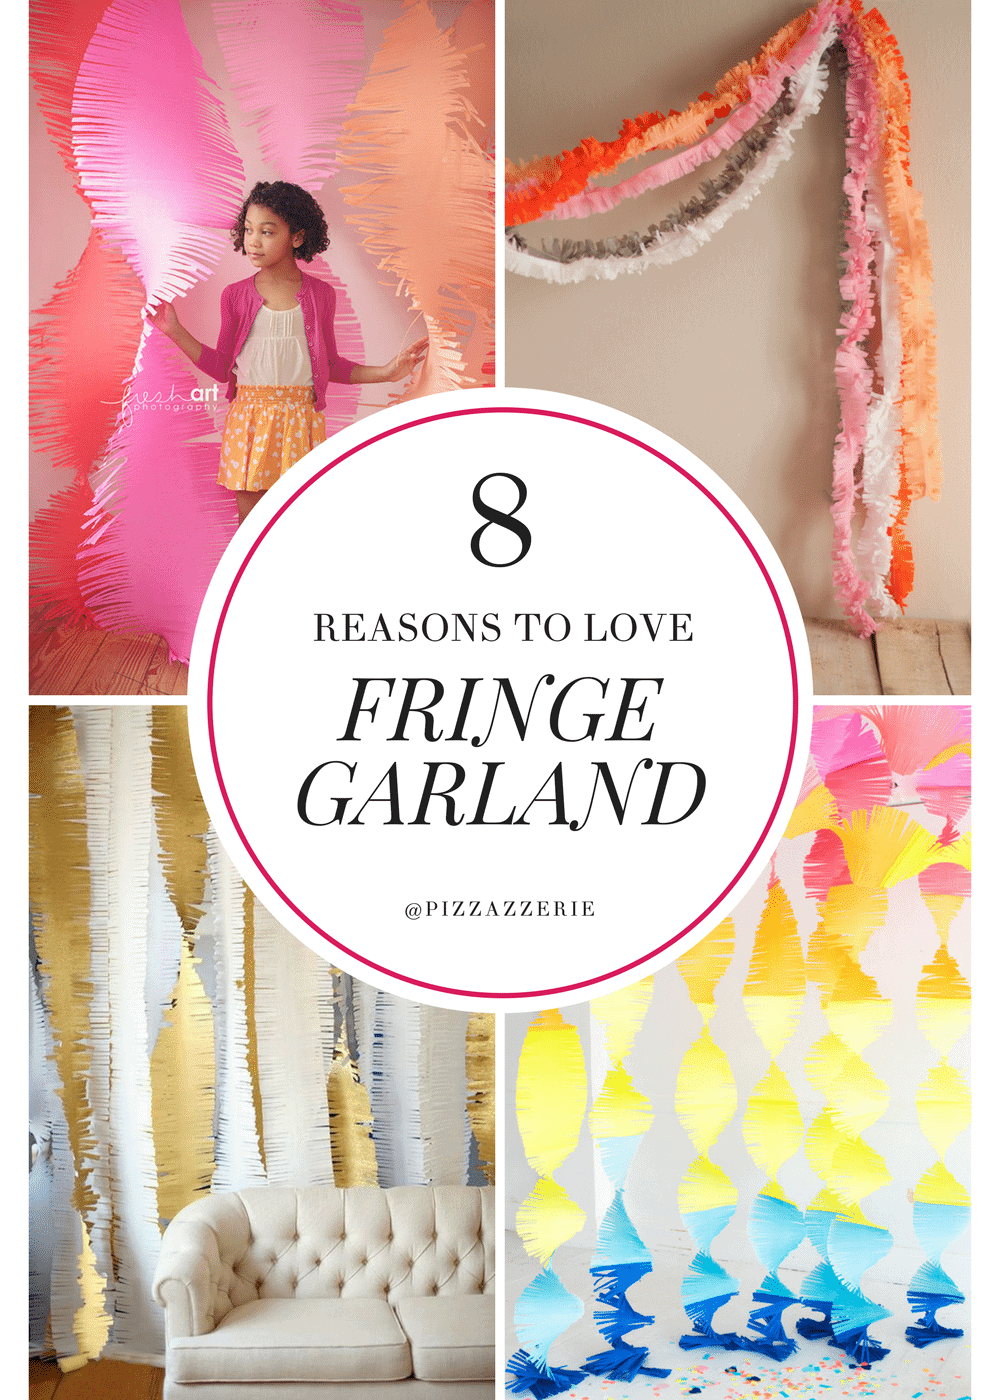 FRINGE GARLAND, how to make it, fringe garland streamers, creative party inspiration!